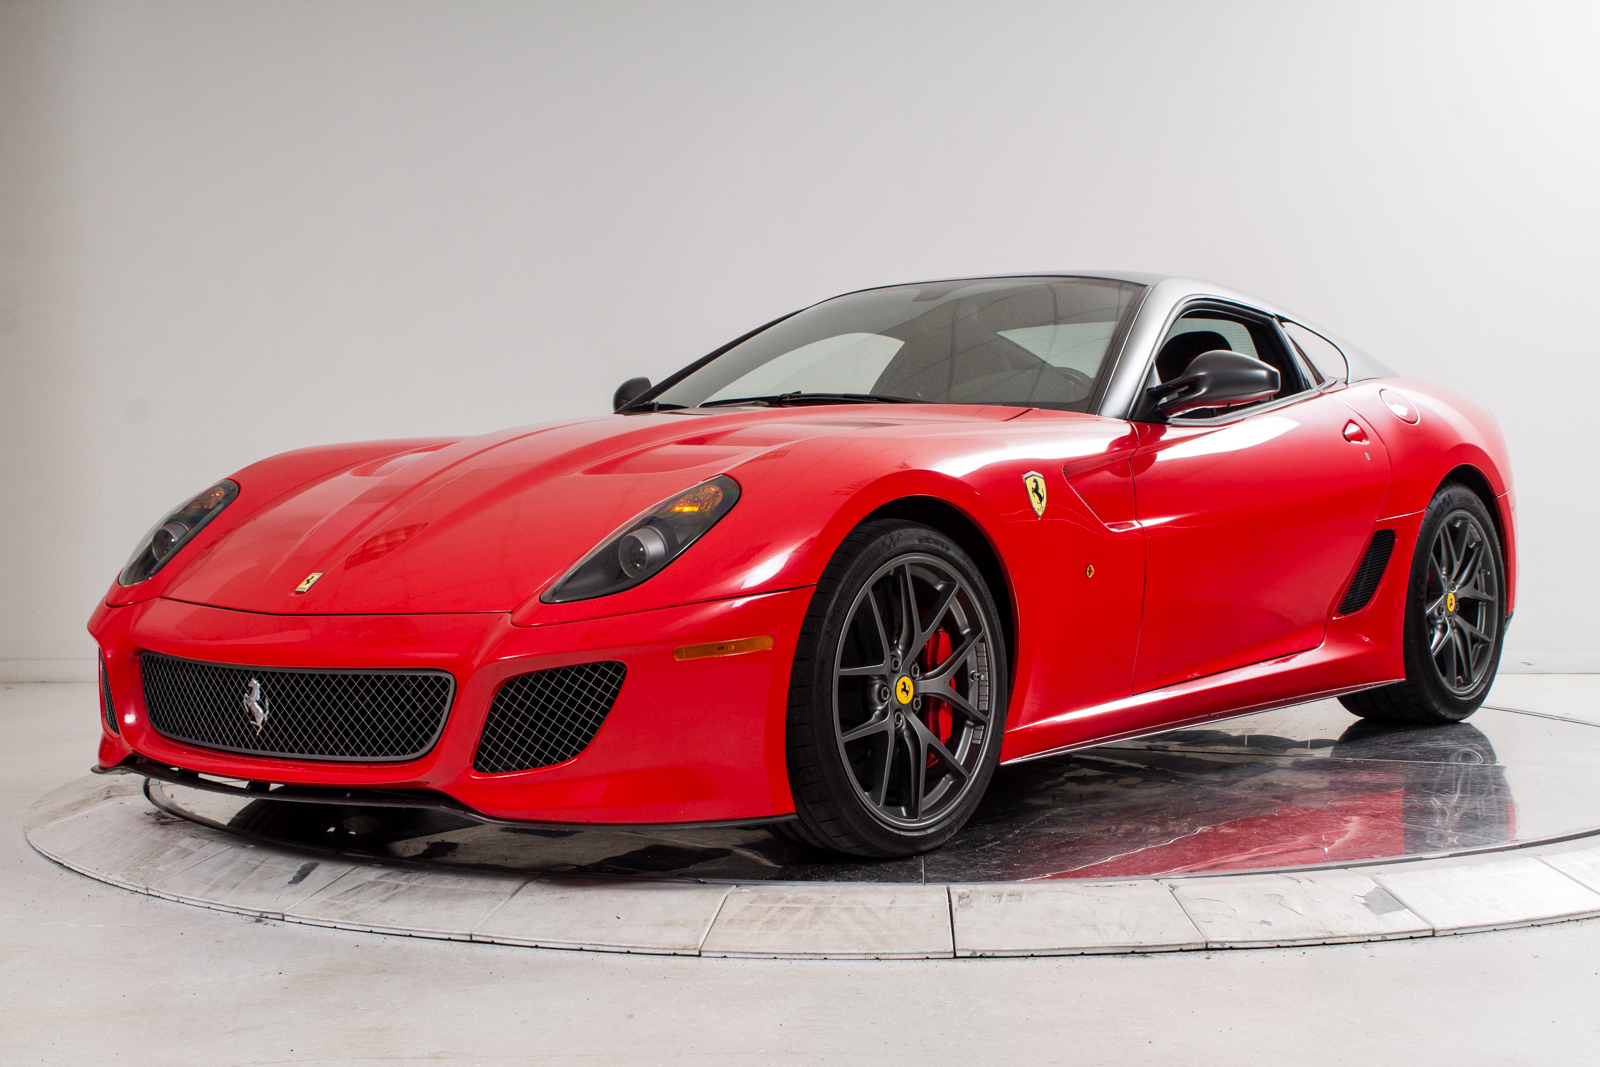 glamorous ferrari 599 gto for sale in the u s gtspirit. Black Bedroom Furniture Sets. Home Design Ideas